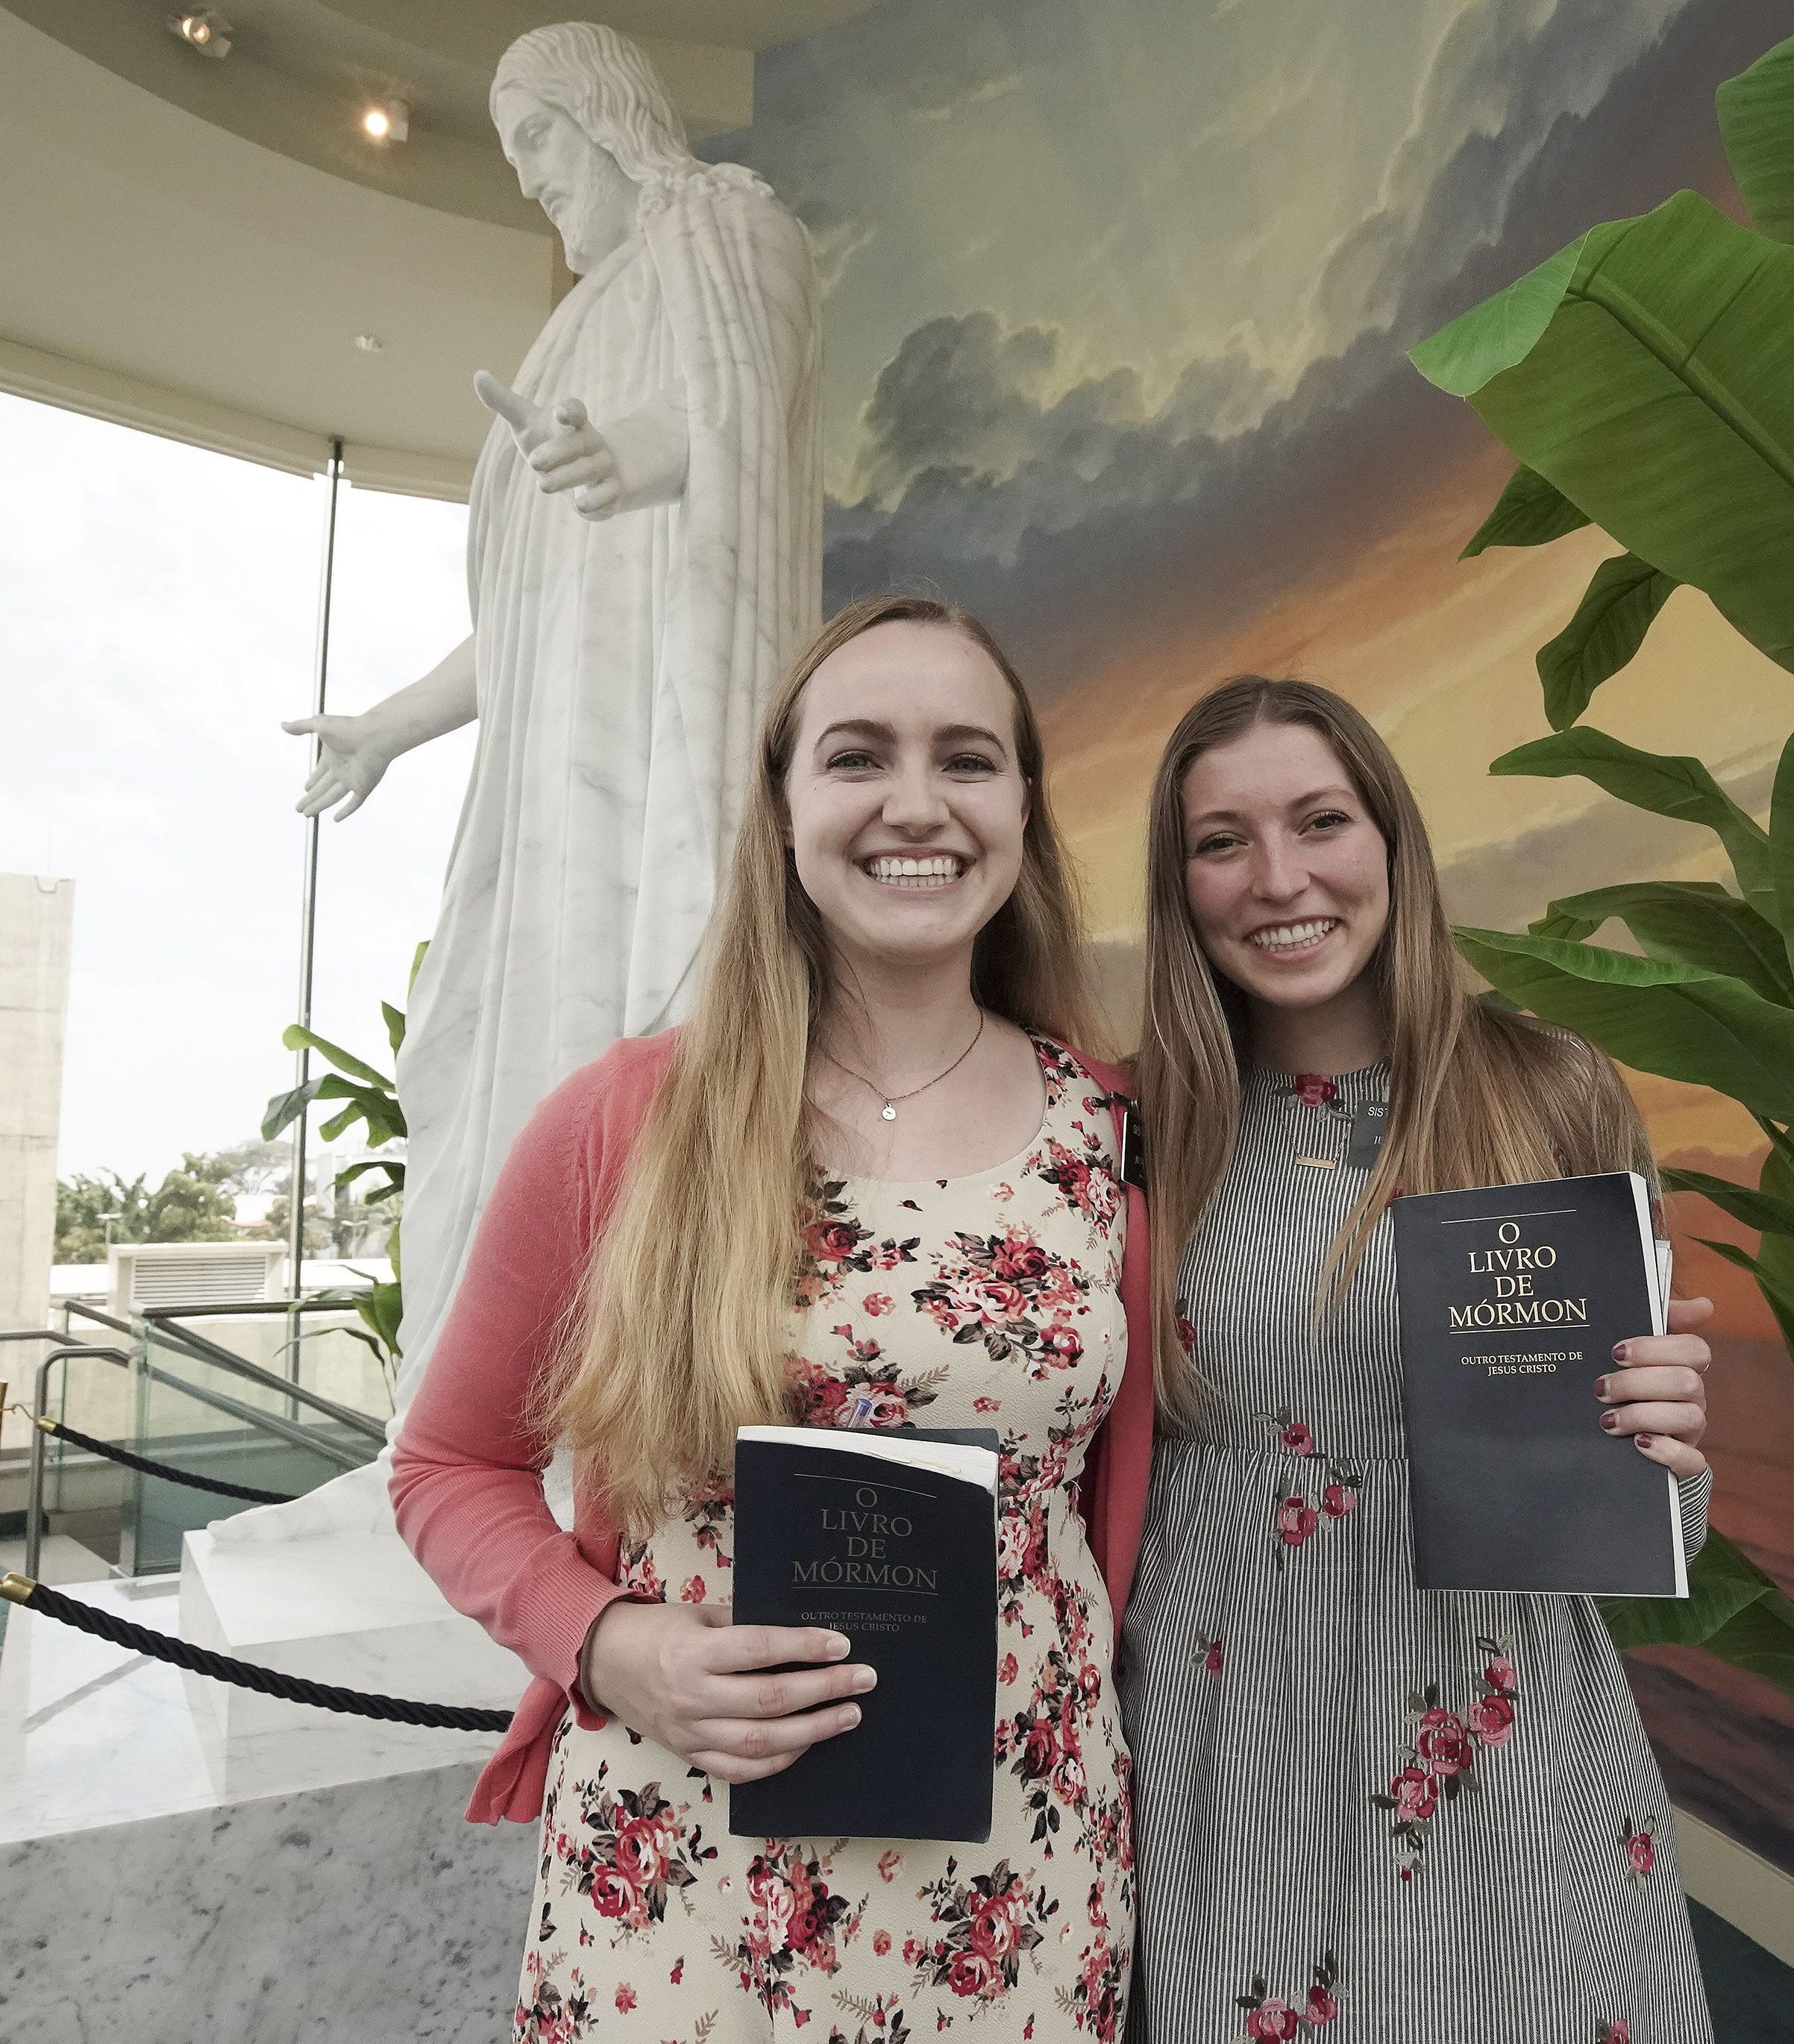 Sister Emma Loftus and Sister Brooke Williams hold their copies of the Book of Mormon in the Sao Paulo Brazil Temple visitors' center in Sao Paulo, Brazil, on Aug. 31, 2019.